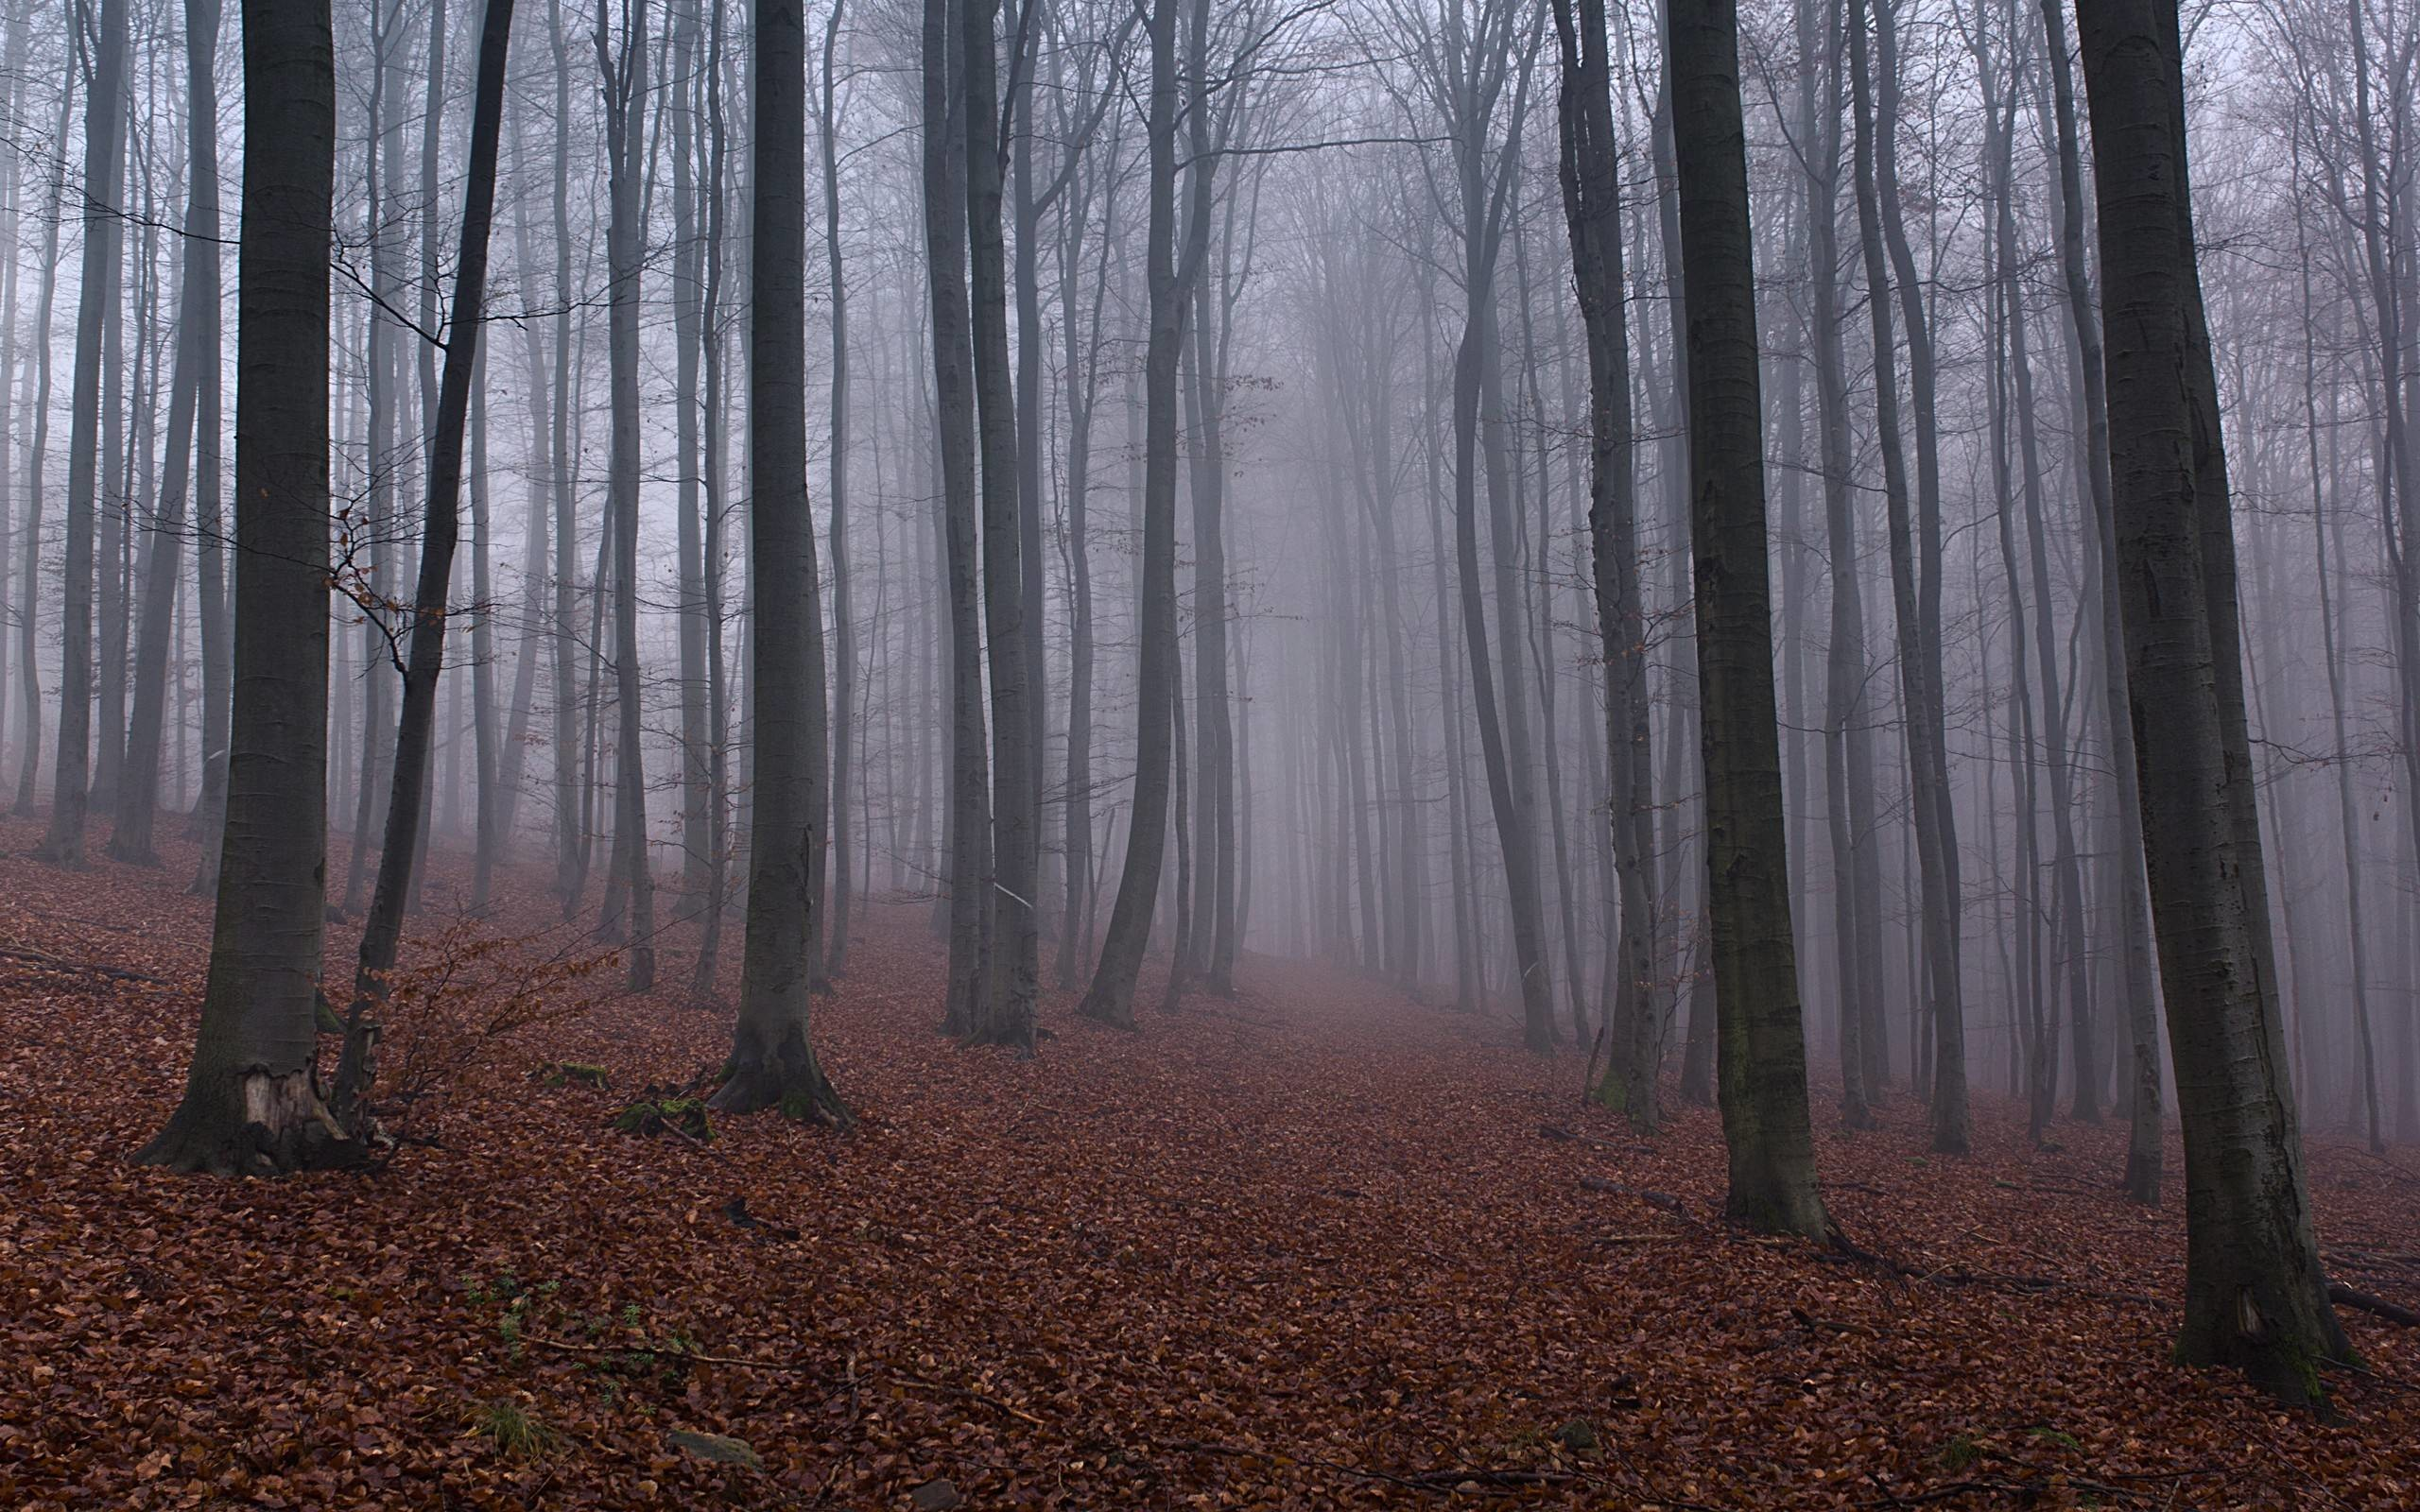 2560x1600 Free Woodland Misty Wallpapers, Free Woodland Misty HD Wallpapers .